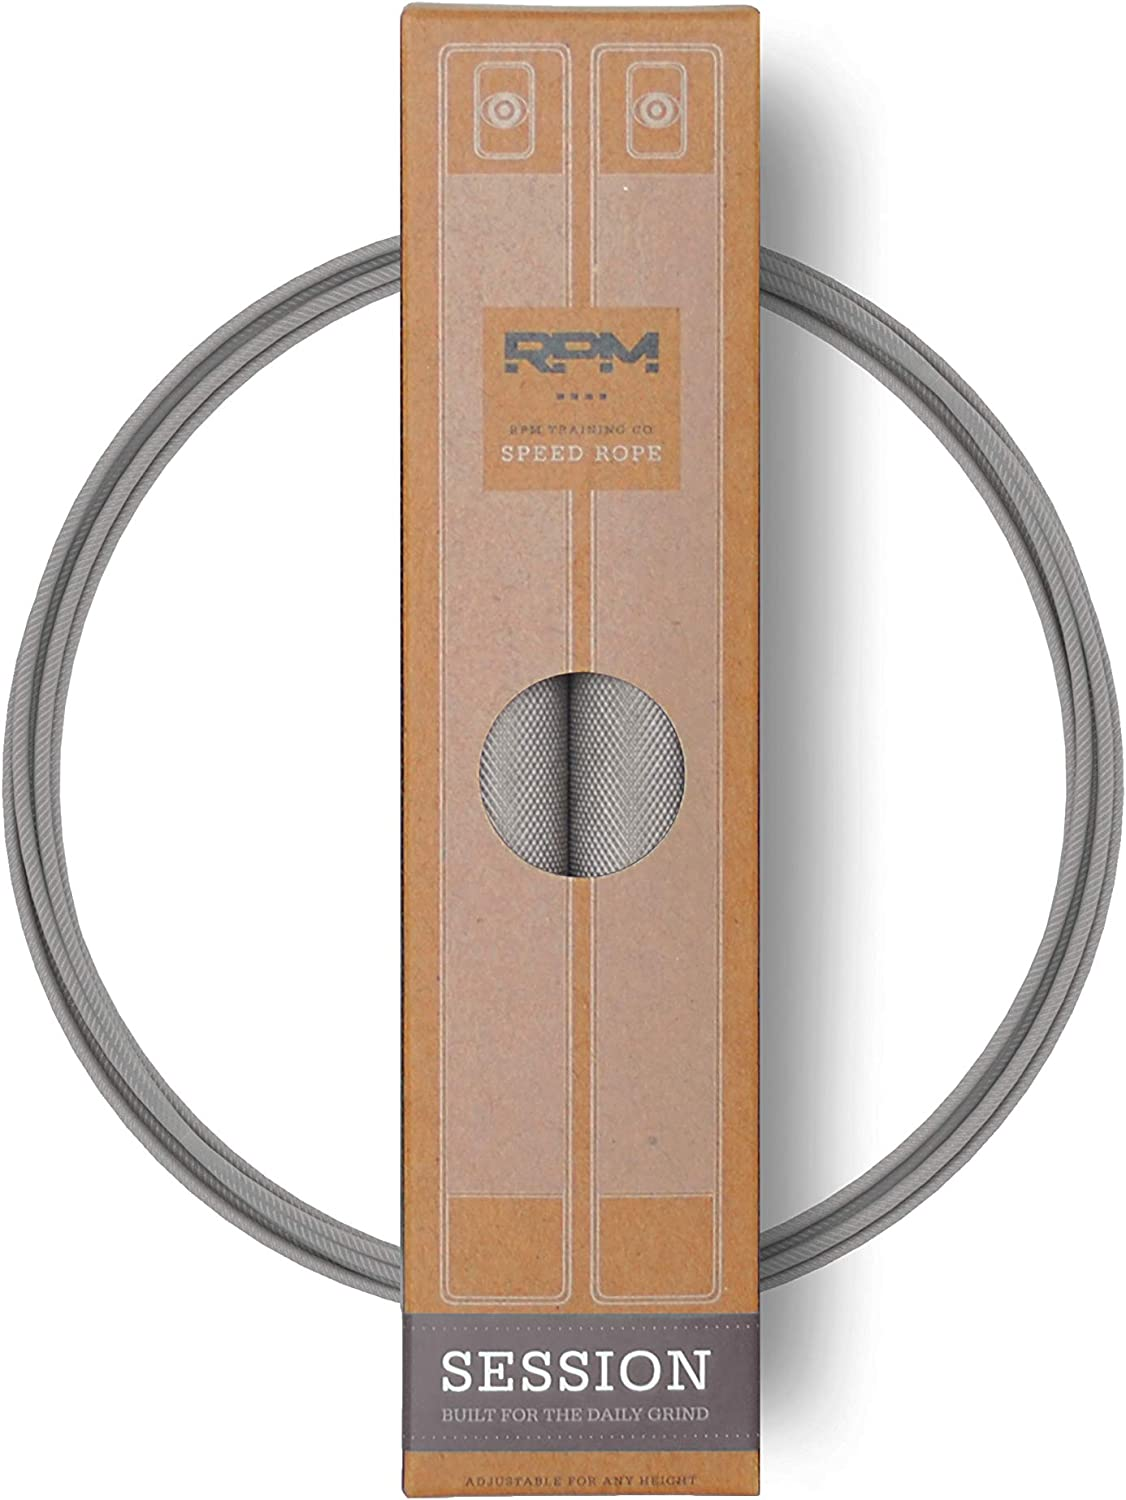 Pewter RPM Speed Rope 3.0